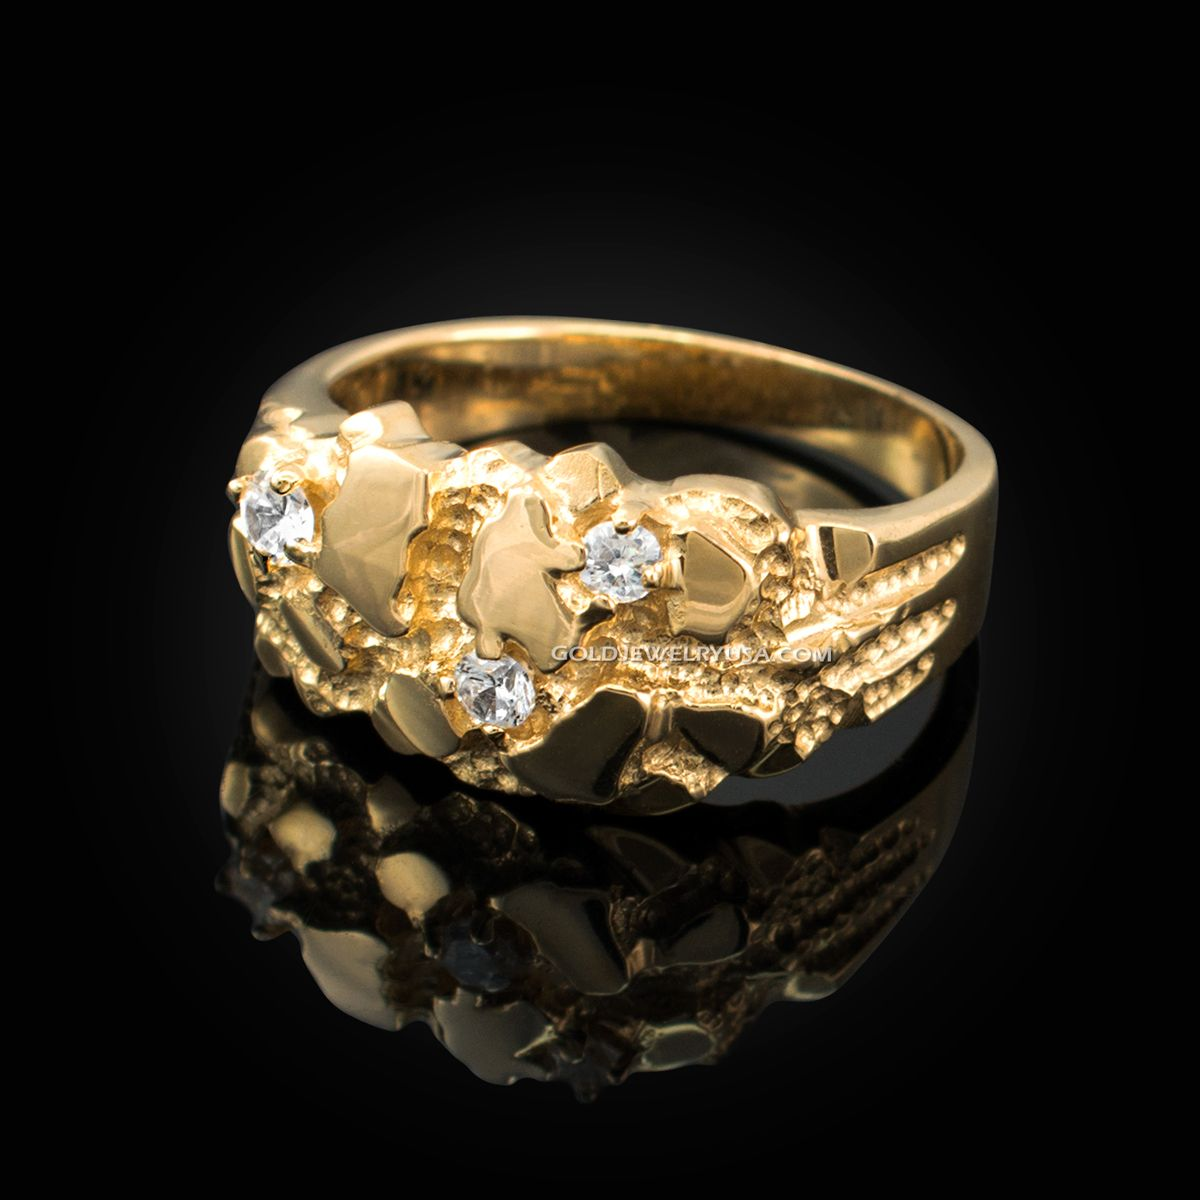 Yellow Gold Elegant Cz Nugget Ring Gold Nugget Ring Mens Gold Rings Black Jewelry Rings